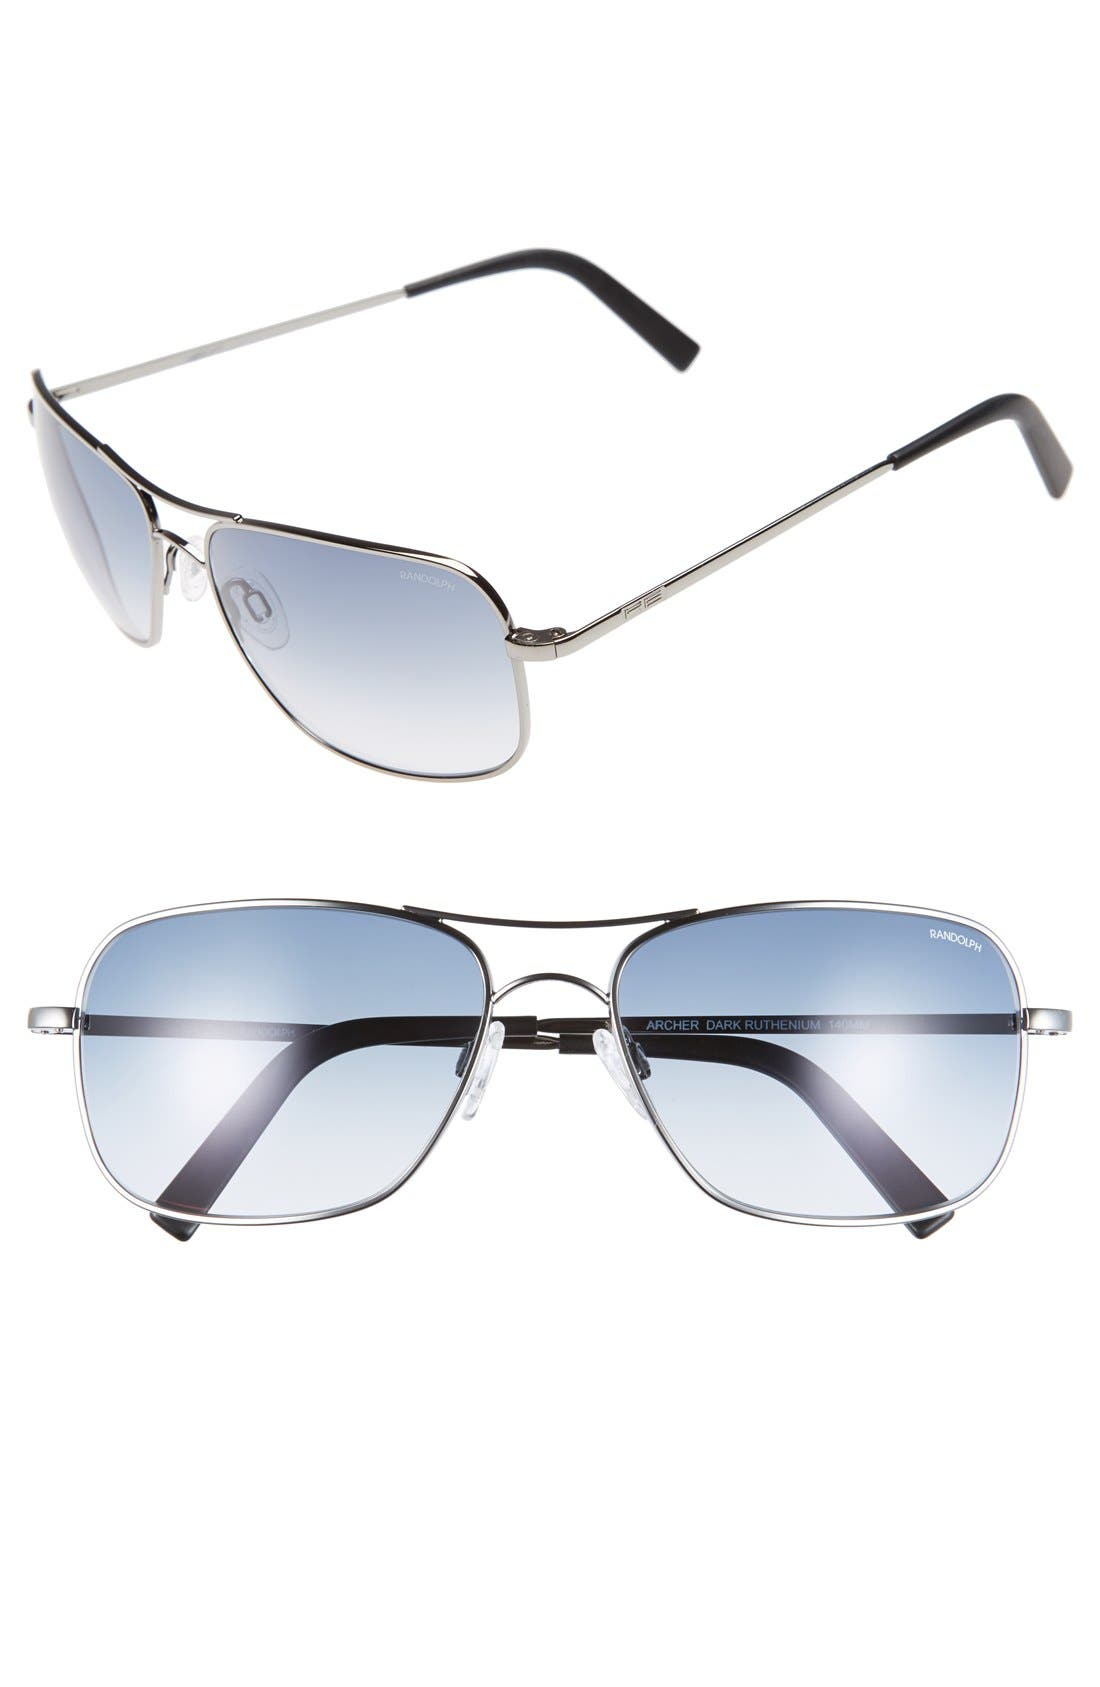 RANDOLPH ENGINEERING 'Archer' 59mm Sunglasses